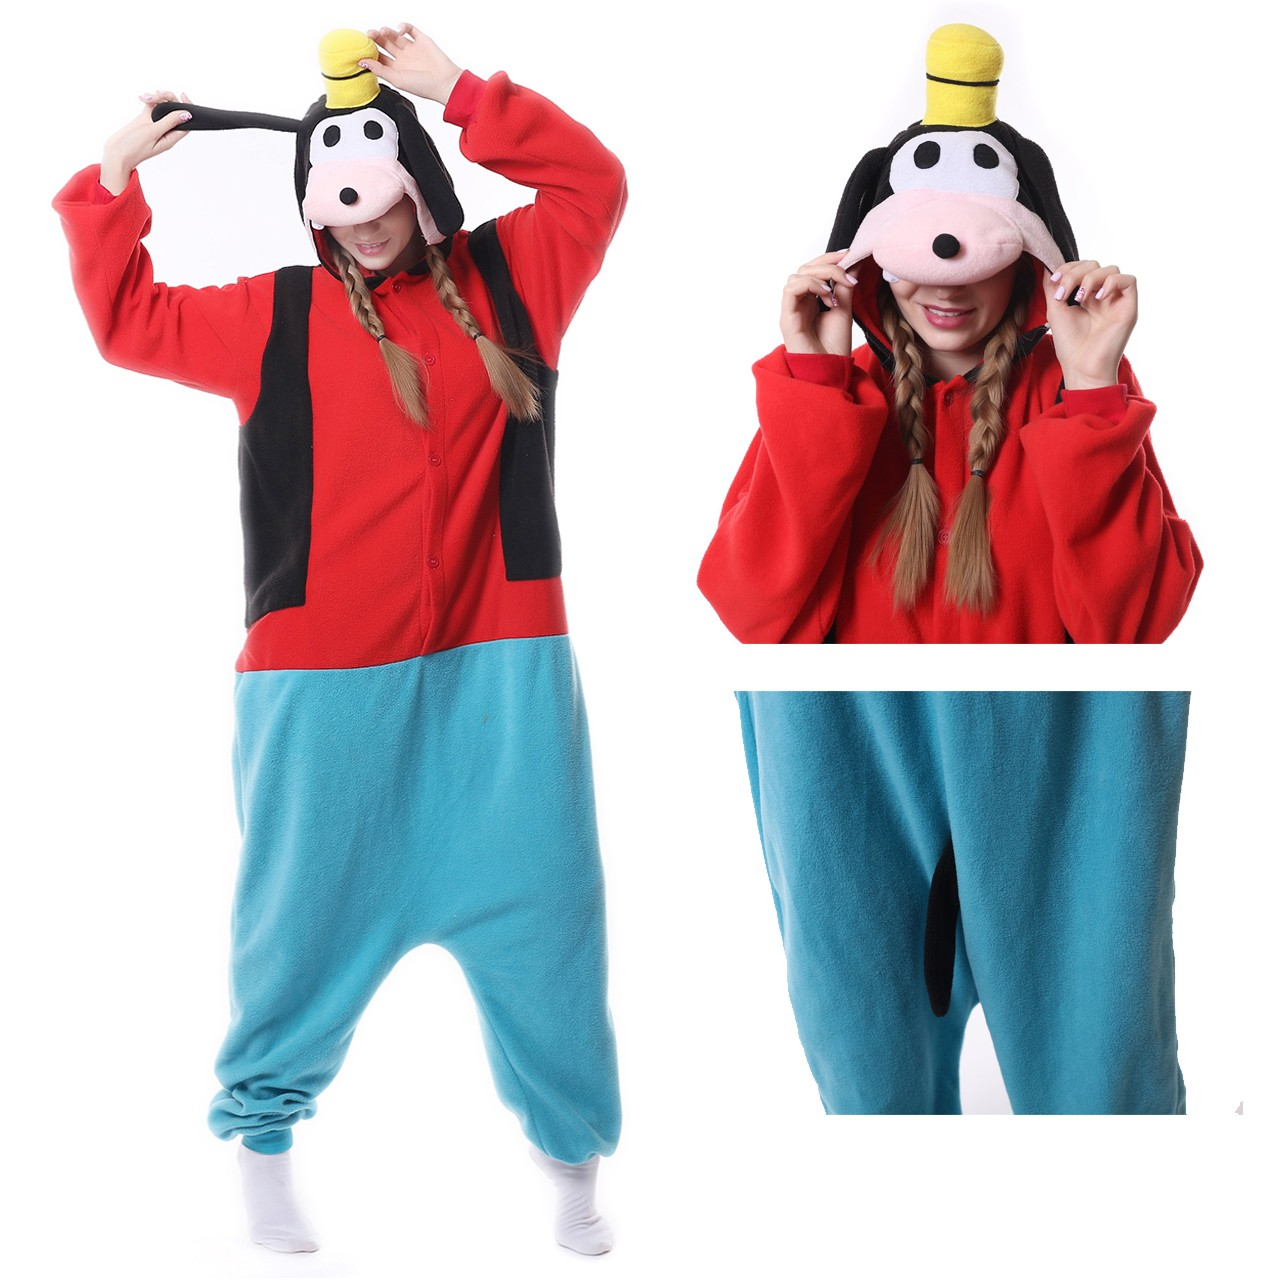 bb815049ad8a Goofy Dog Onesie for Adult Kigurumi Disney Pajama Carnival Party Costumes